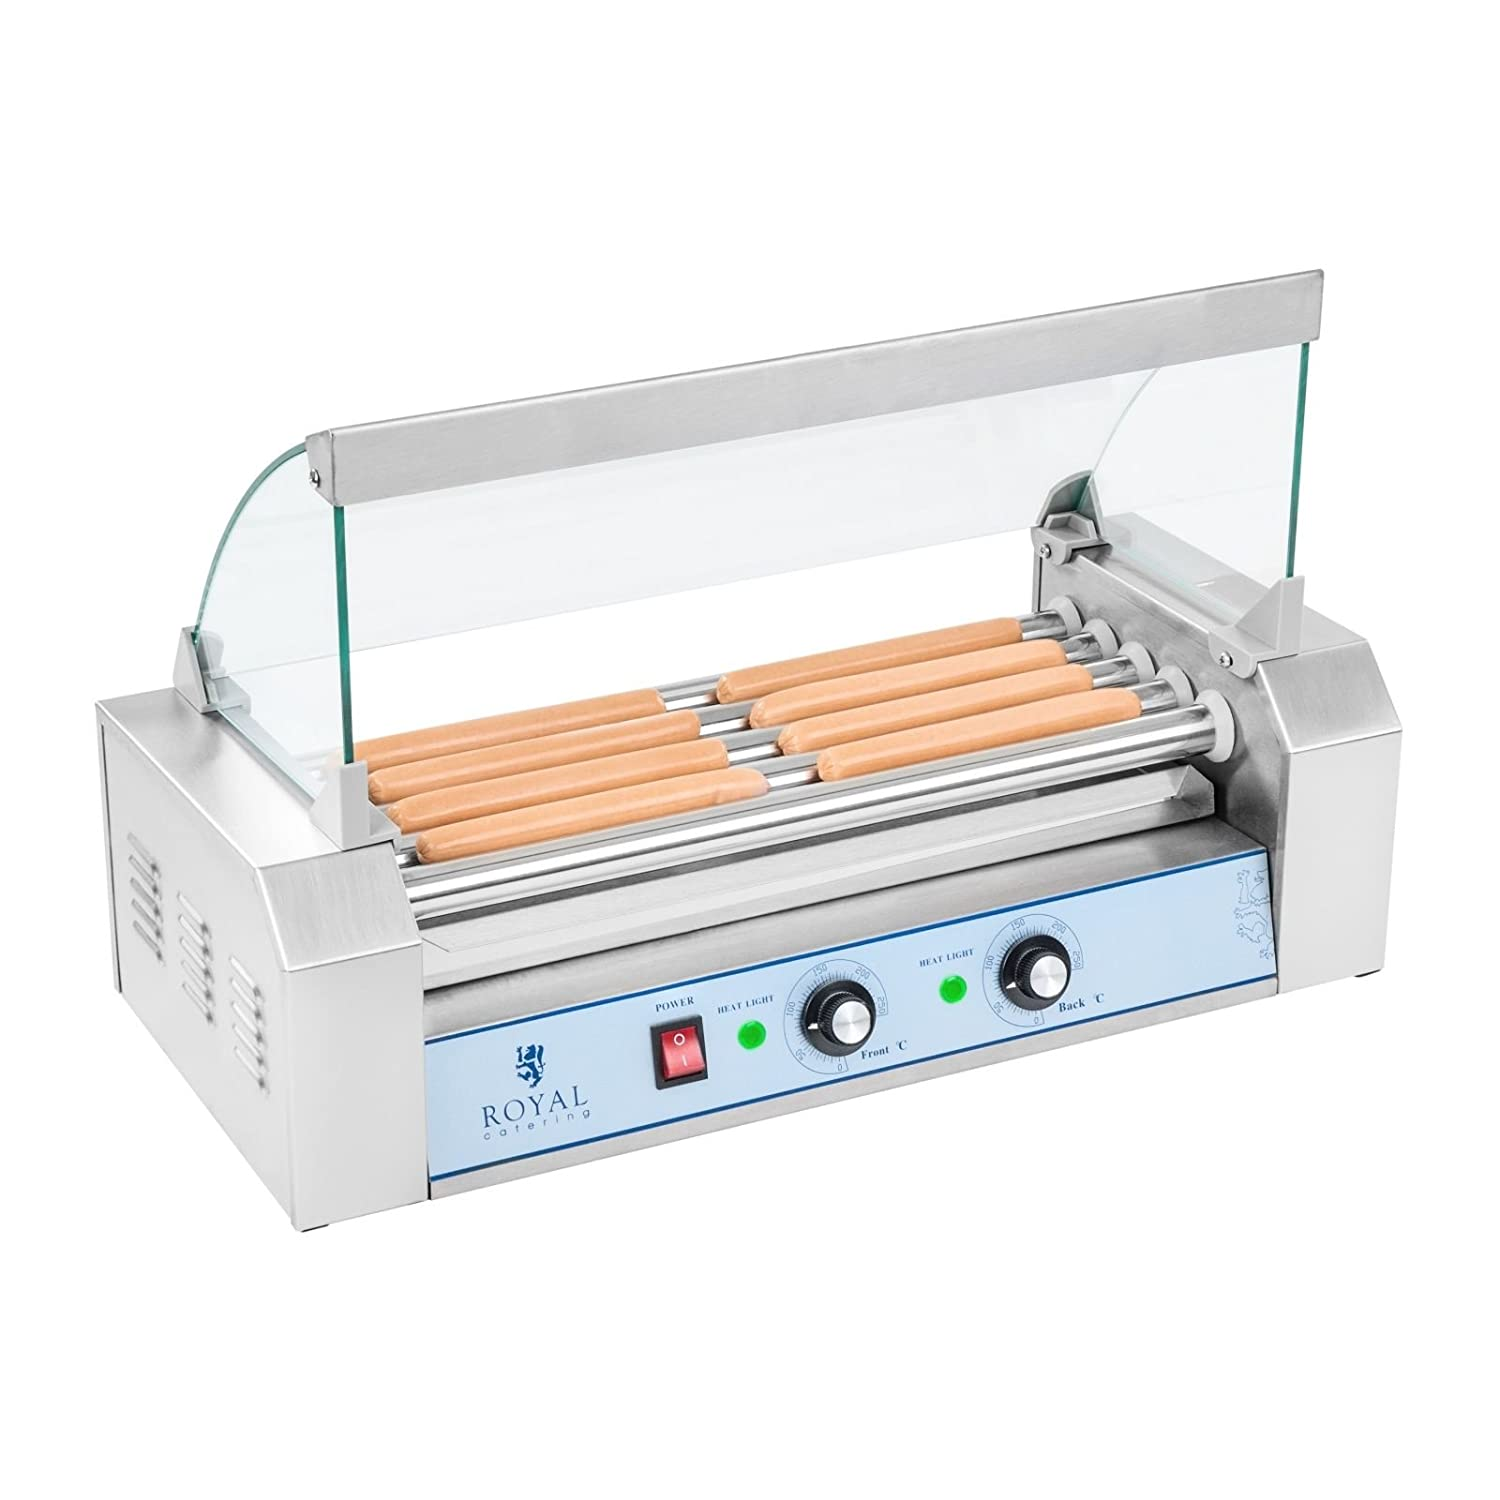 Royal Catering - RCHG-5E - Hot Dog Grill/Sausage Grill - 5 heating rods - protection cover - 230 V - 1000 W